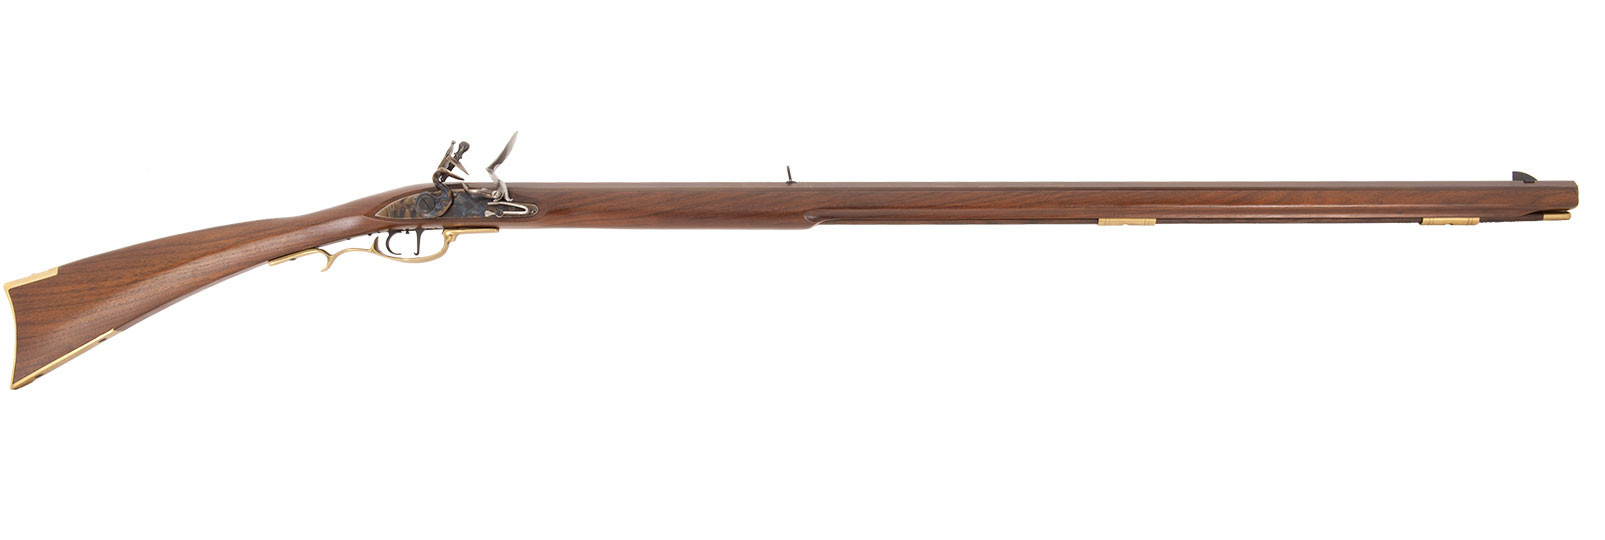 Frontier Rifle flintlock model